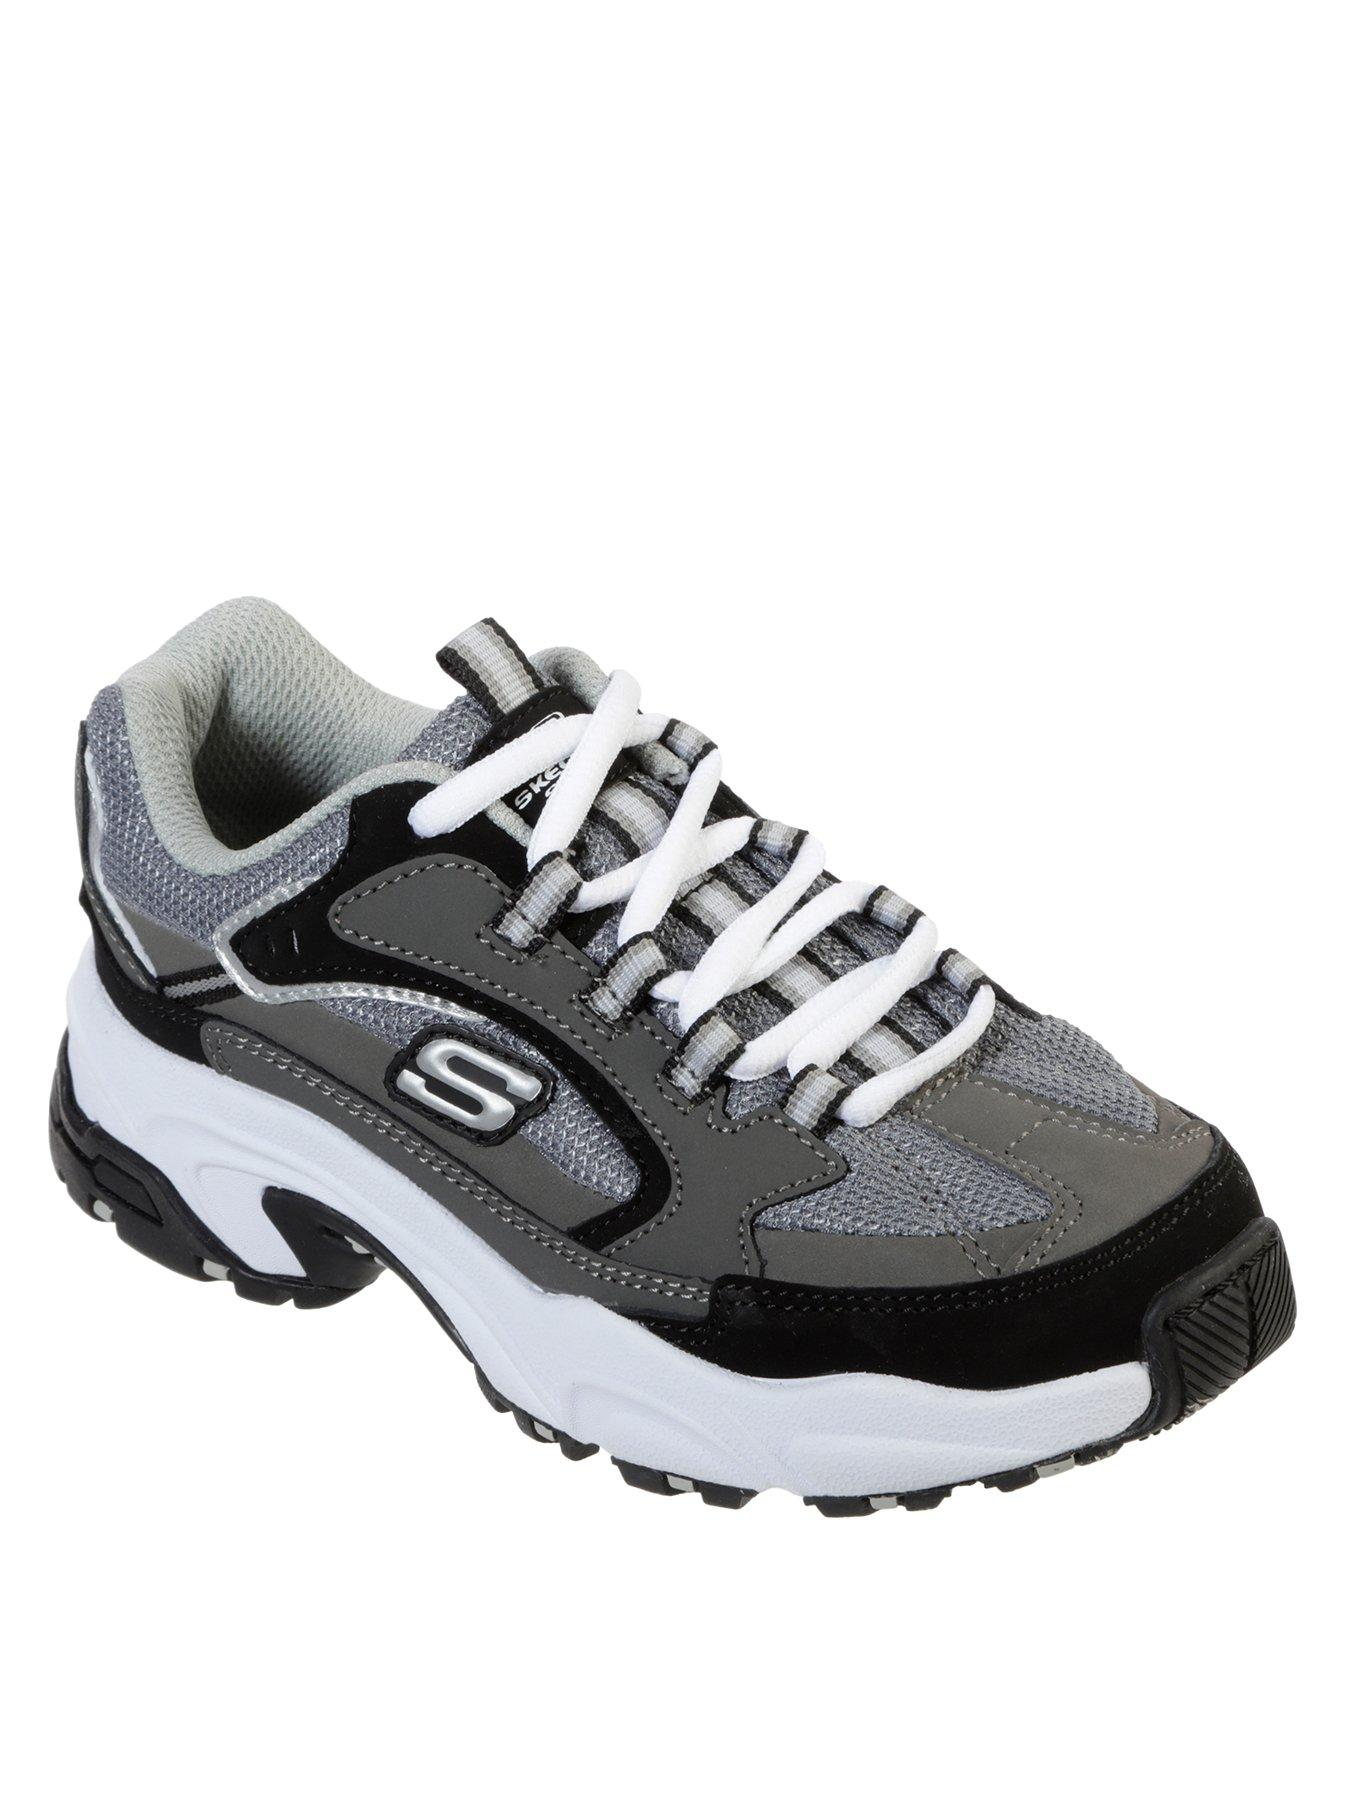 The Best Skechers Game Wallpapers